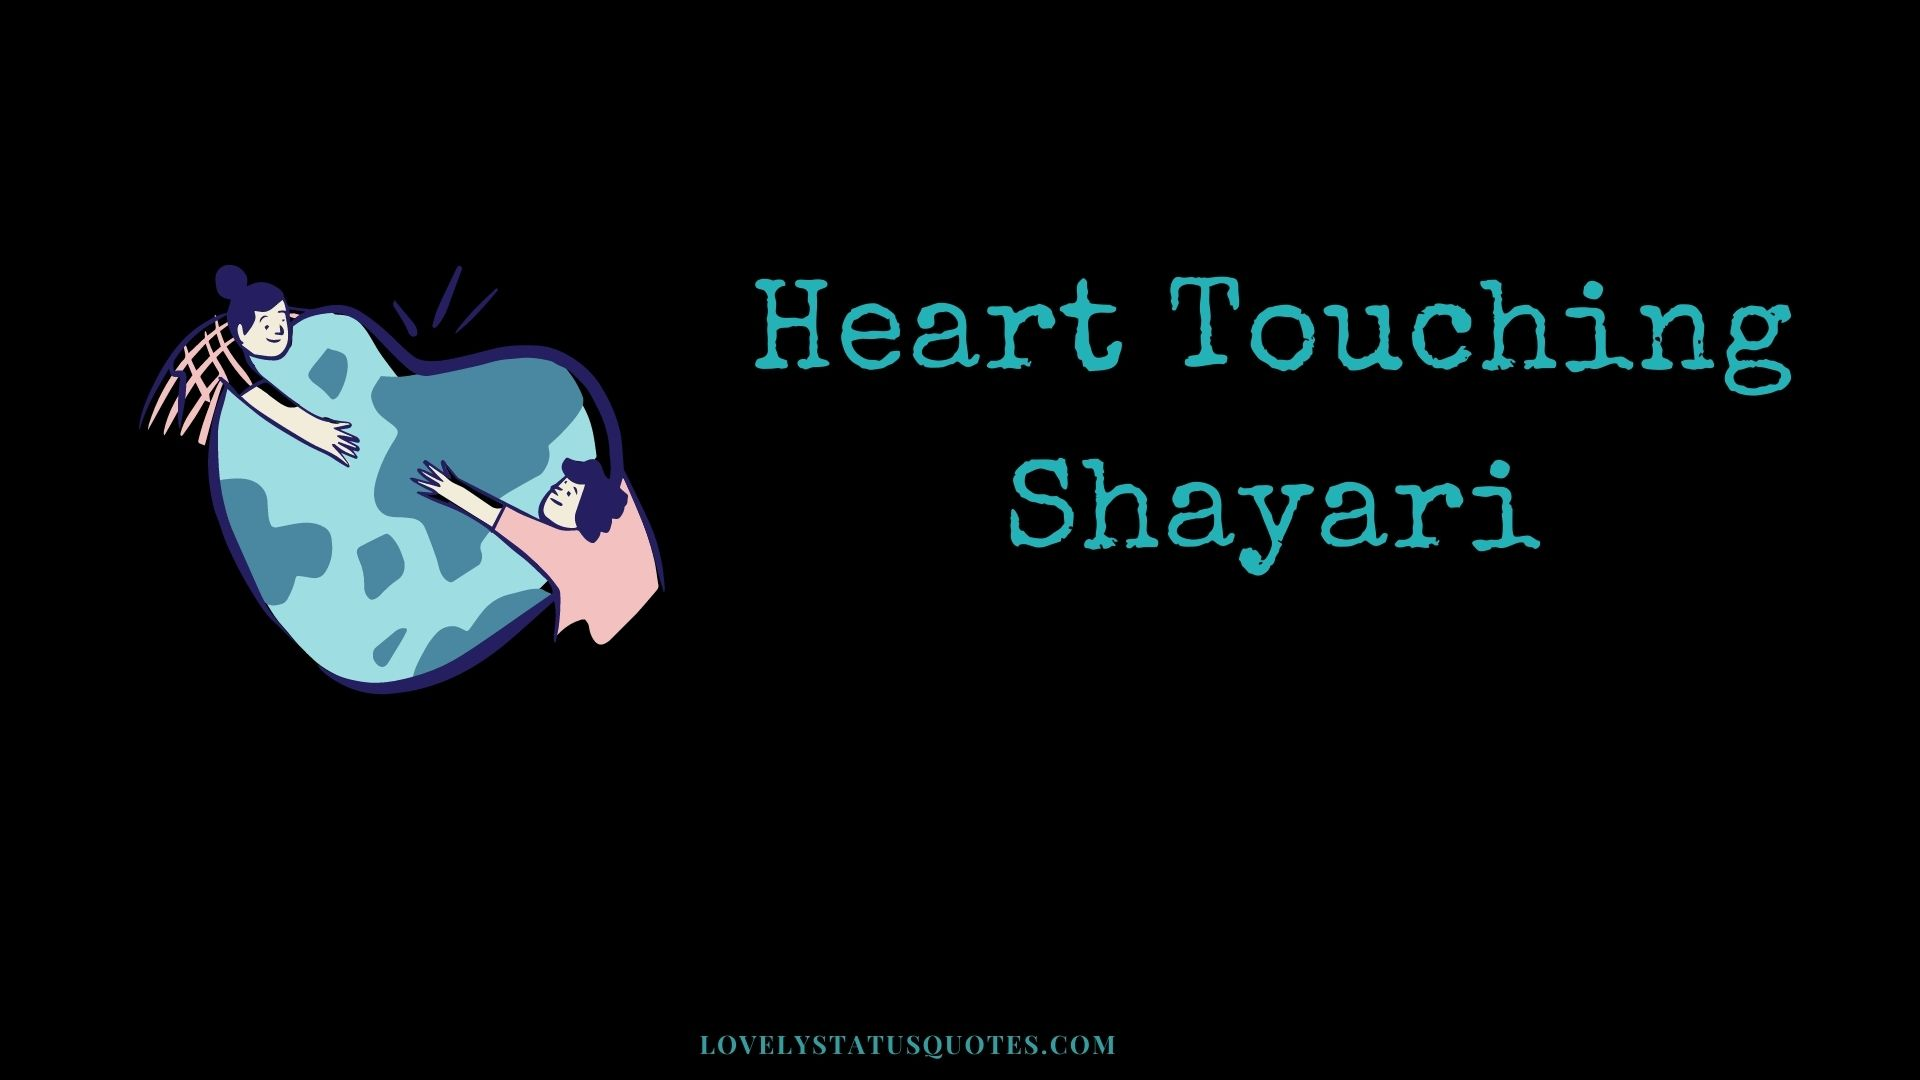 heart touching status shayari for facebook, whatsapp